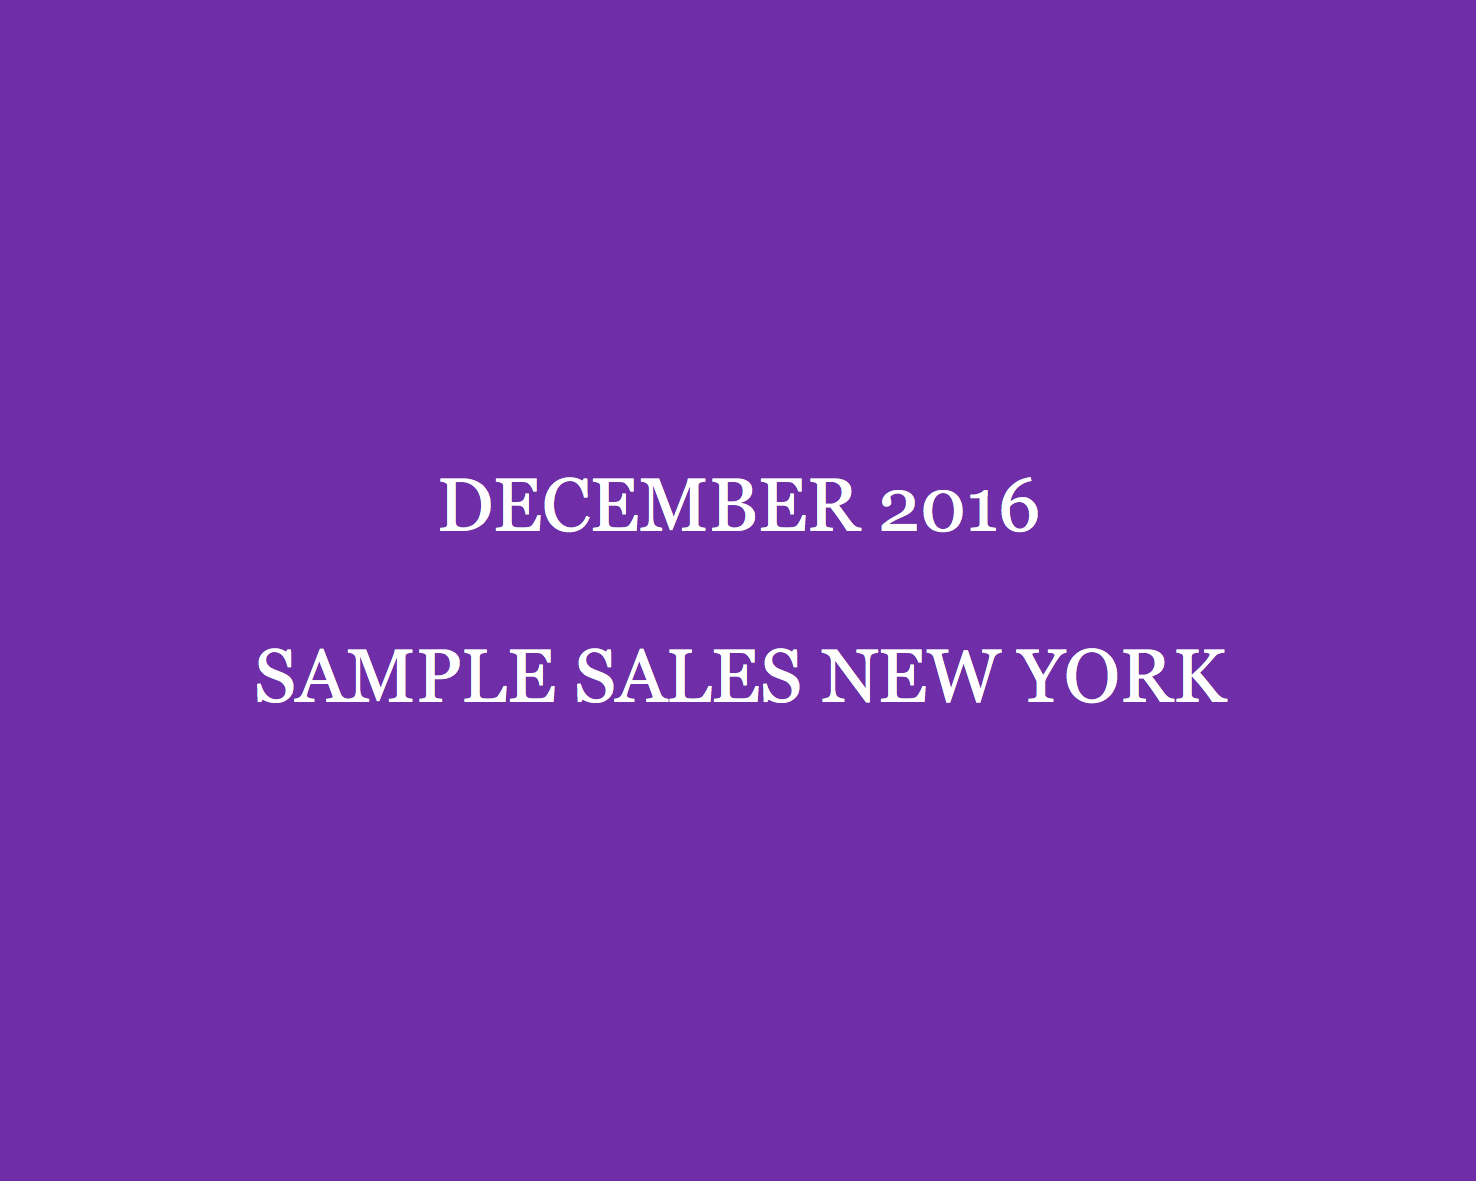 december-2016-sample-sales-new-york-style-barista-new-york-sample-sales